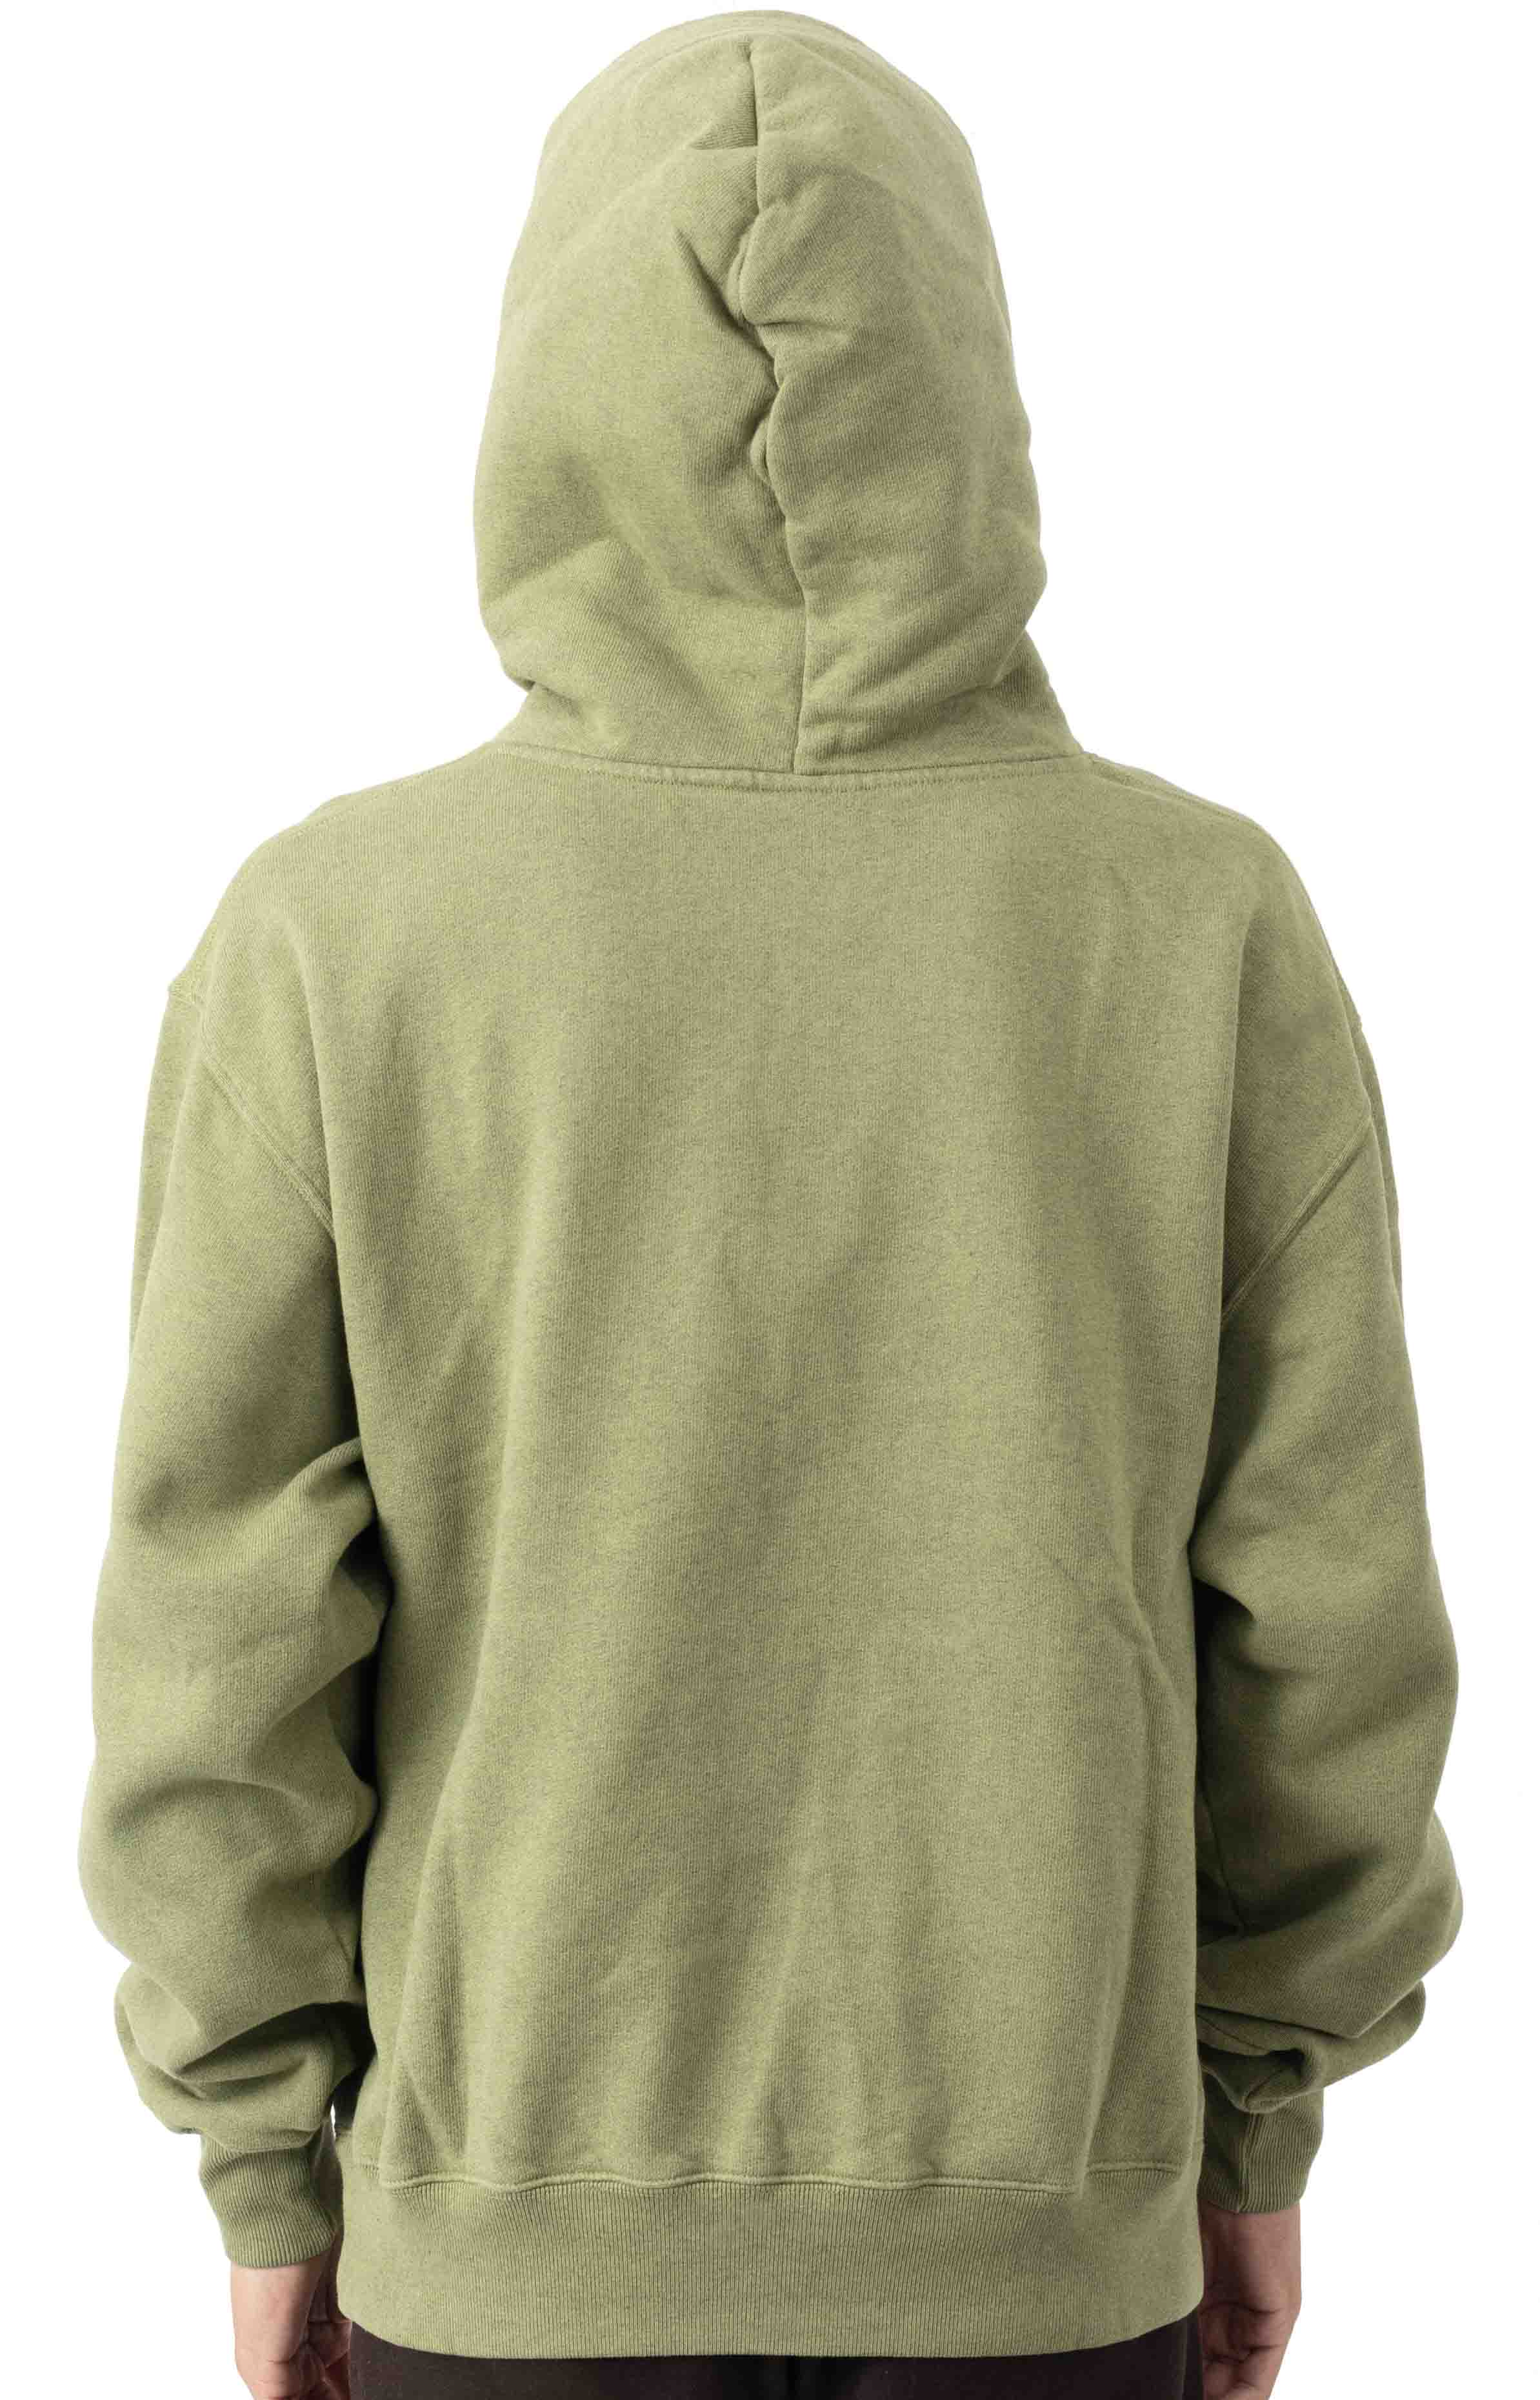 Patch Pullover Hoodie - Heather Green 3